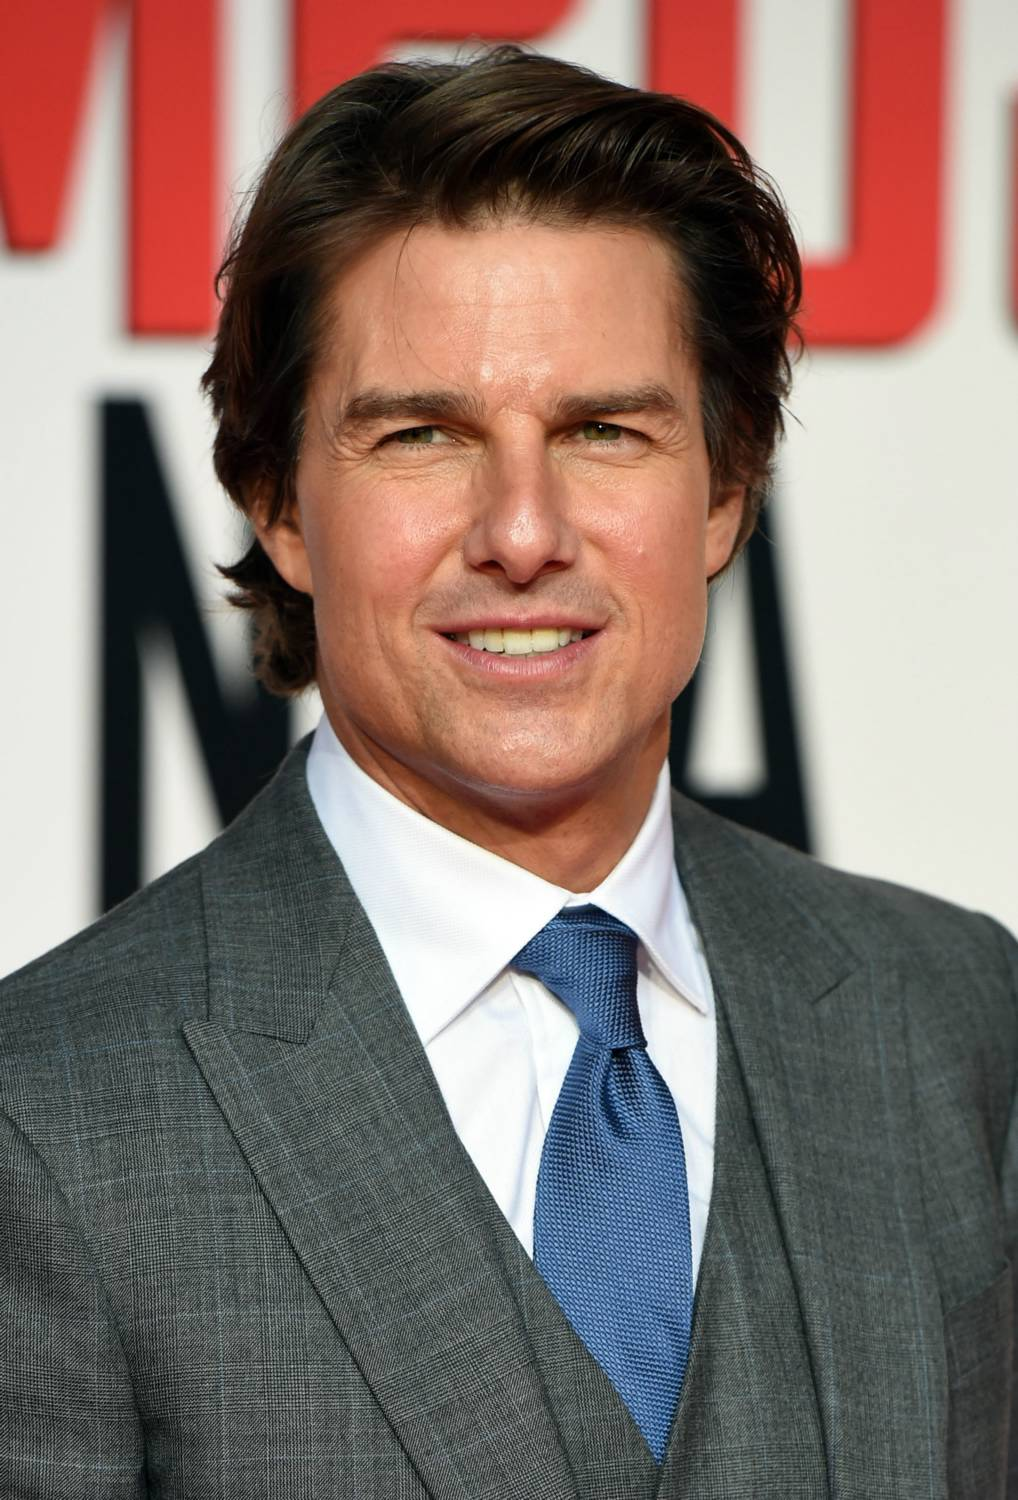 Tom Cruise photo #665861